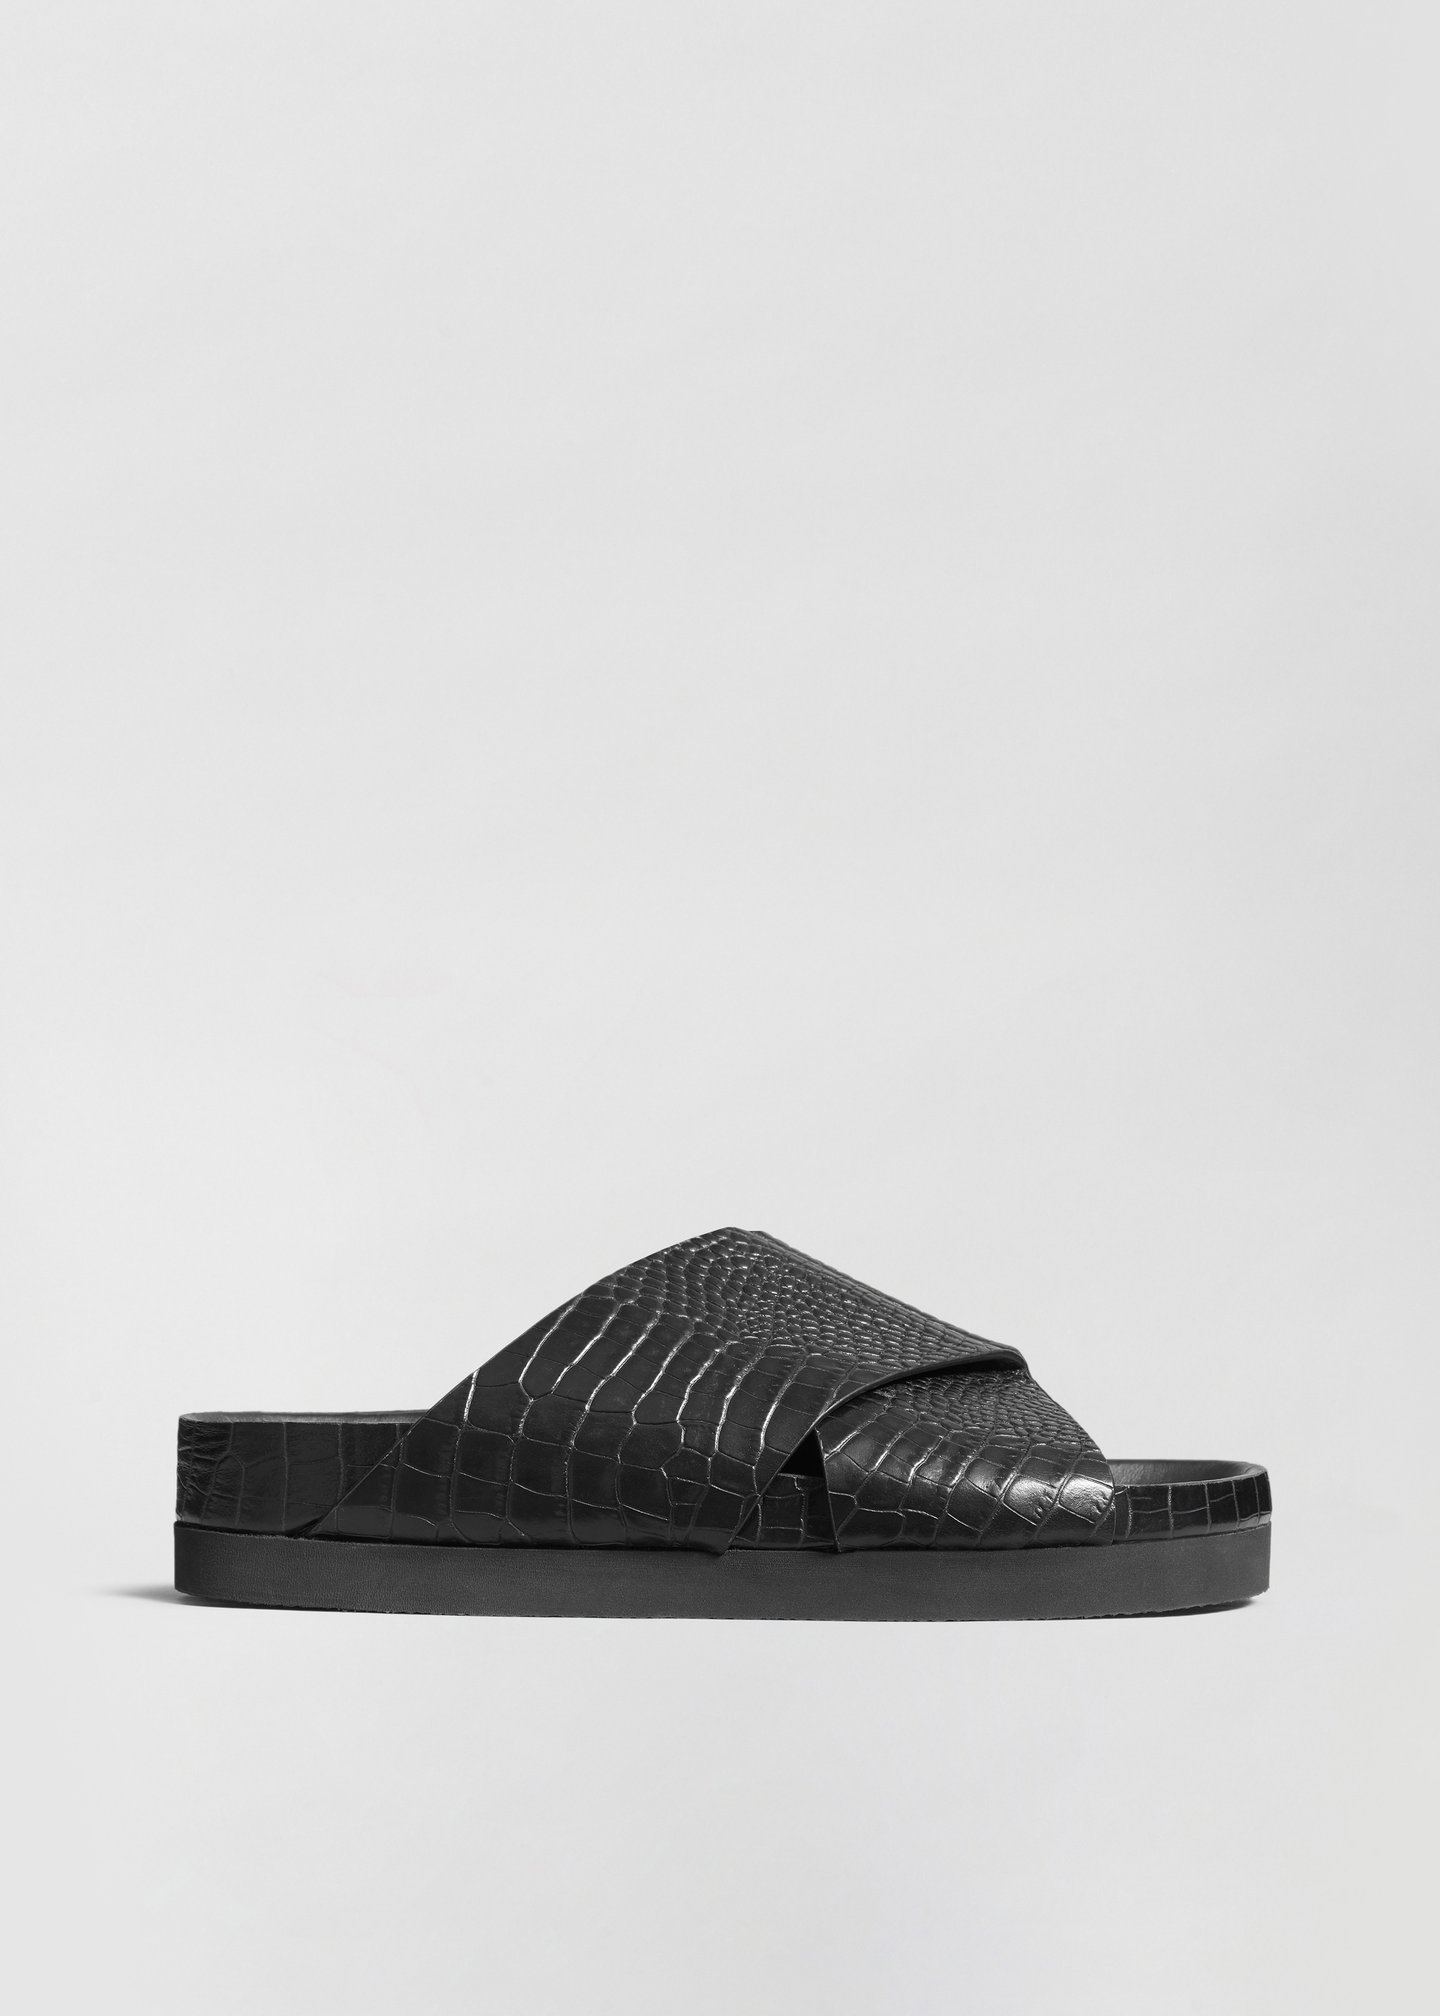 Slide Sandal in Embossed Leather - Dark Brown in Black Croc by Co Collections